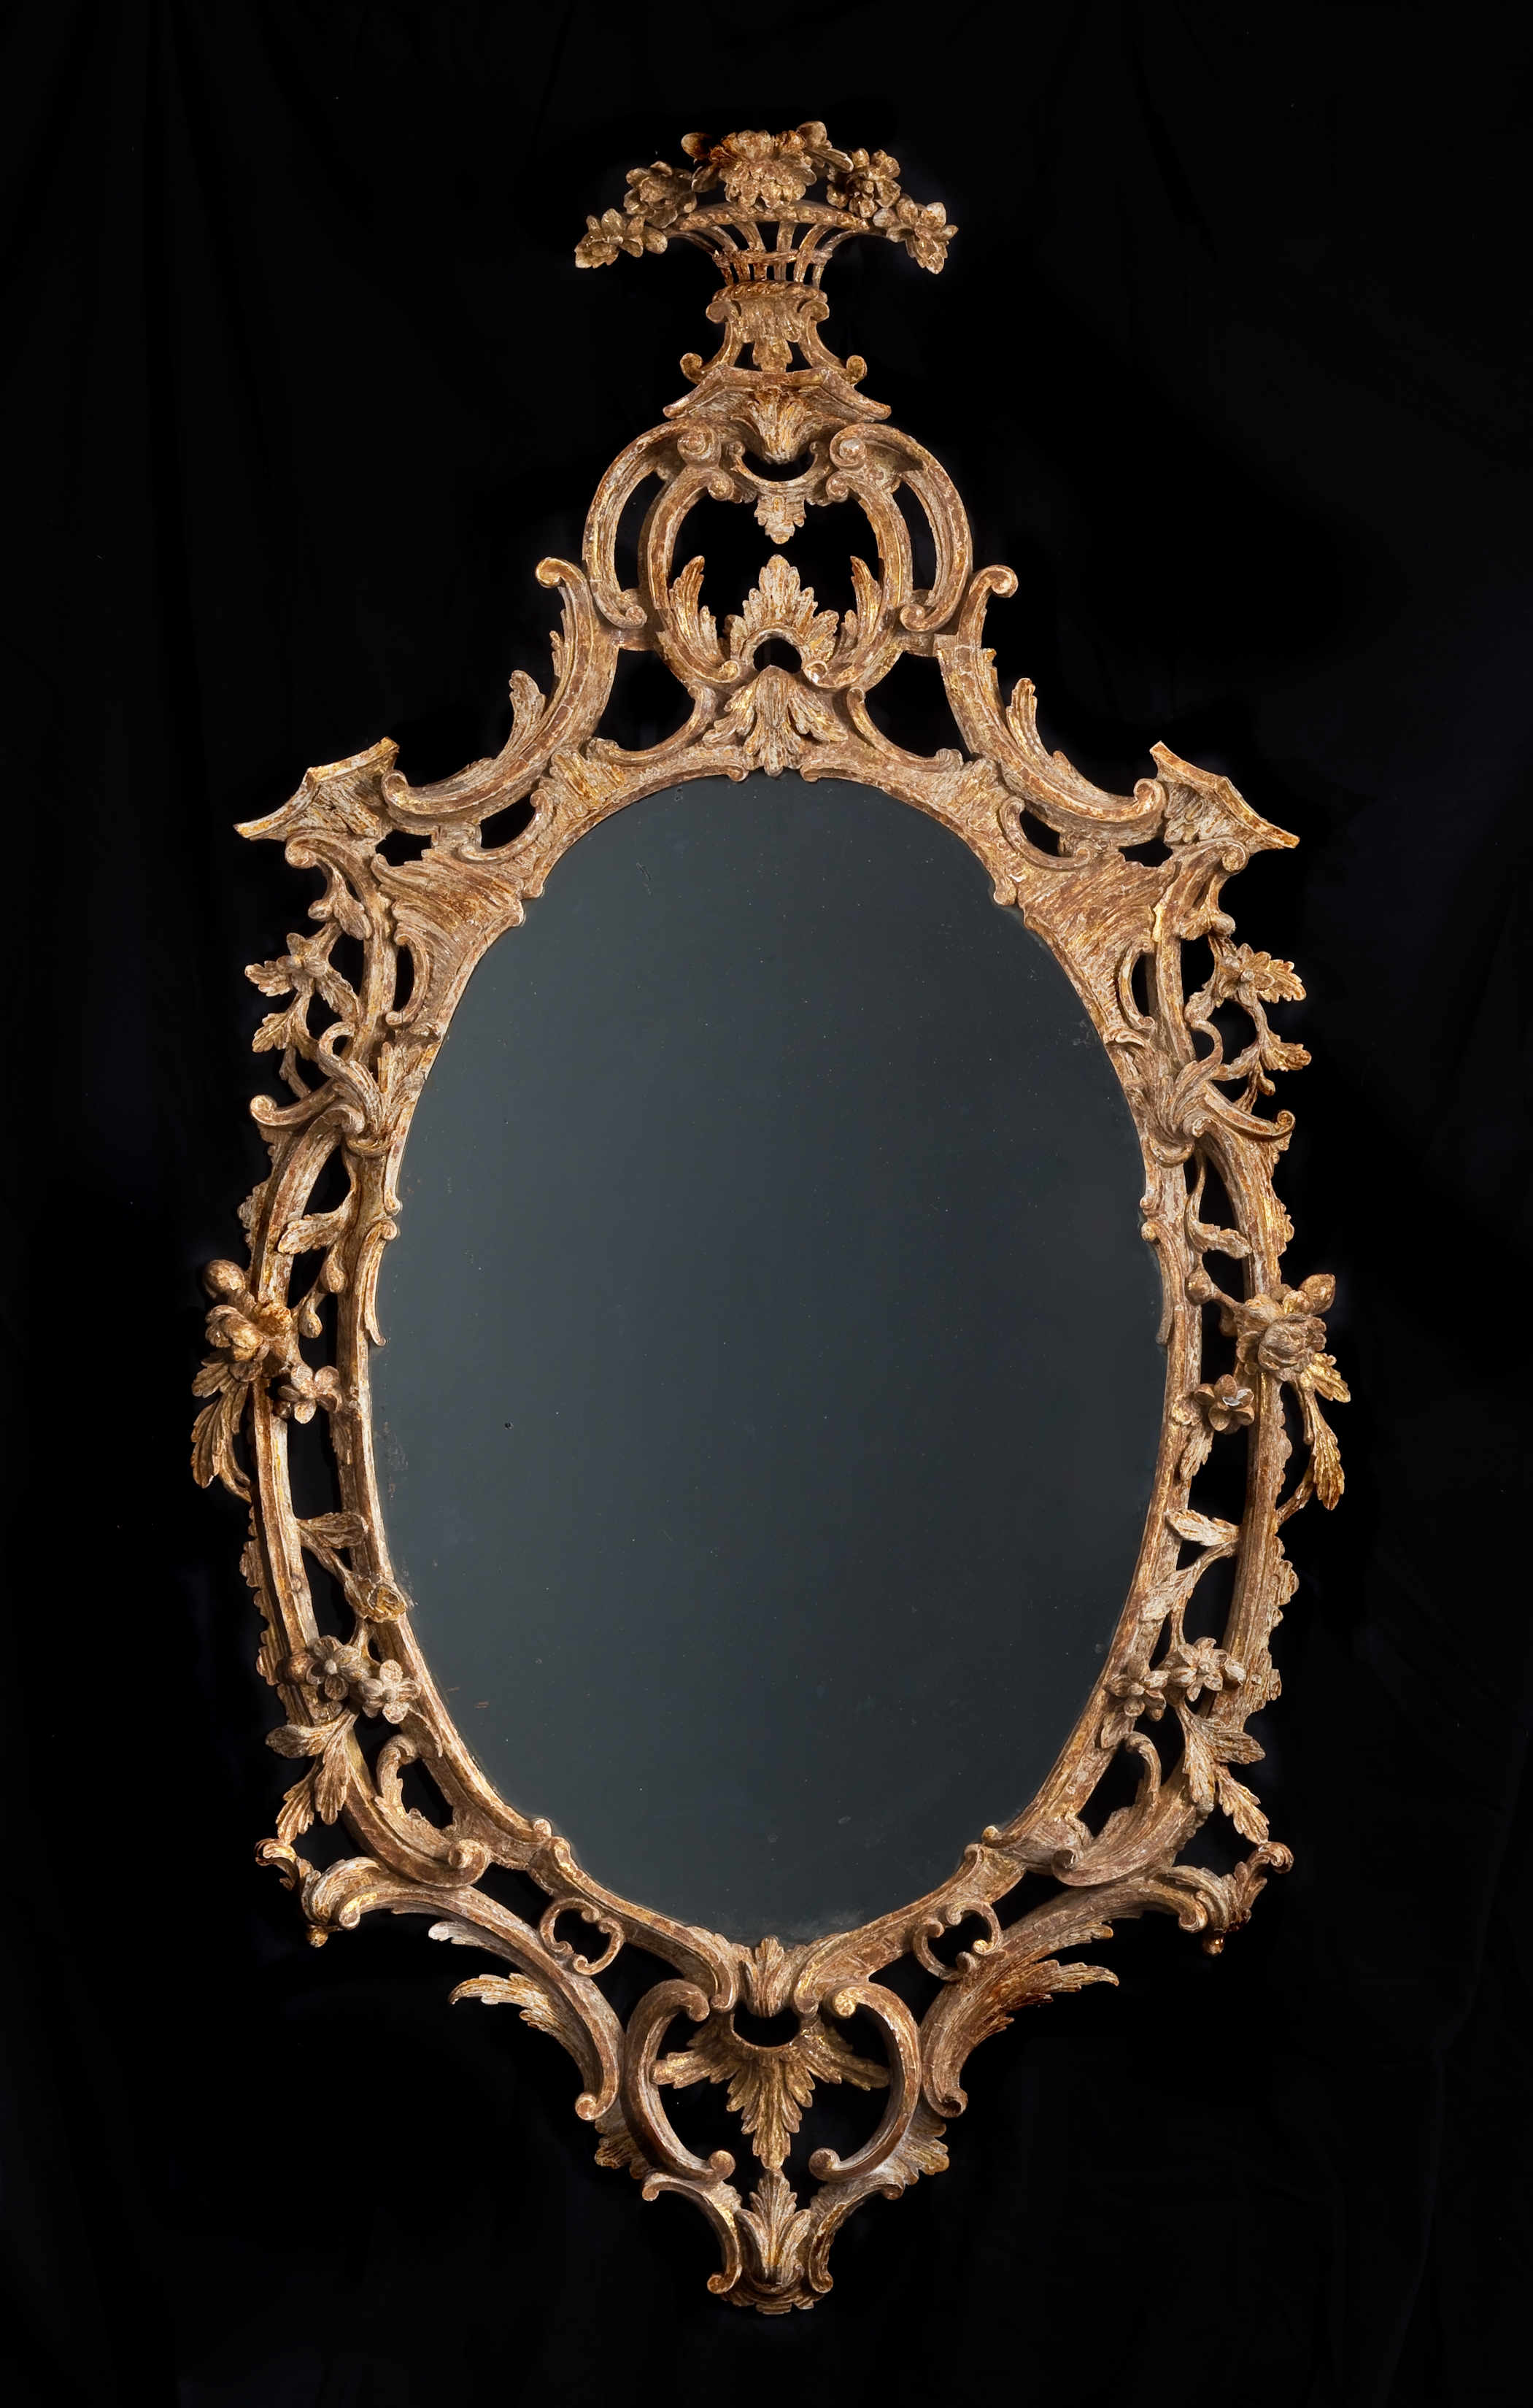 A Transitional Baroque And Rococo Mirror Clinton Howell Intended For Rococo Mirrors (Image 4 of 15)